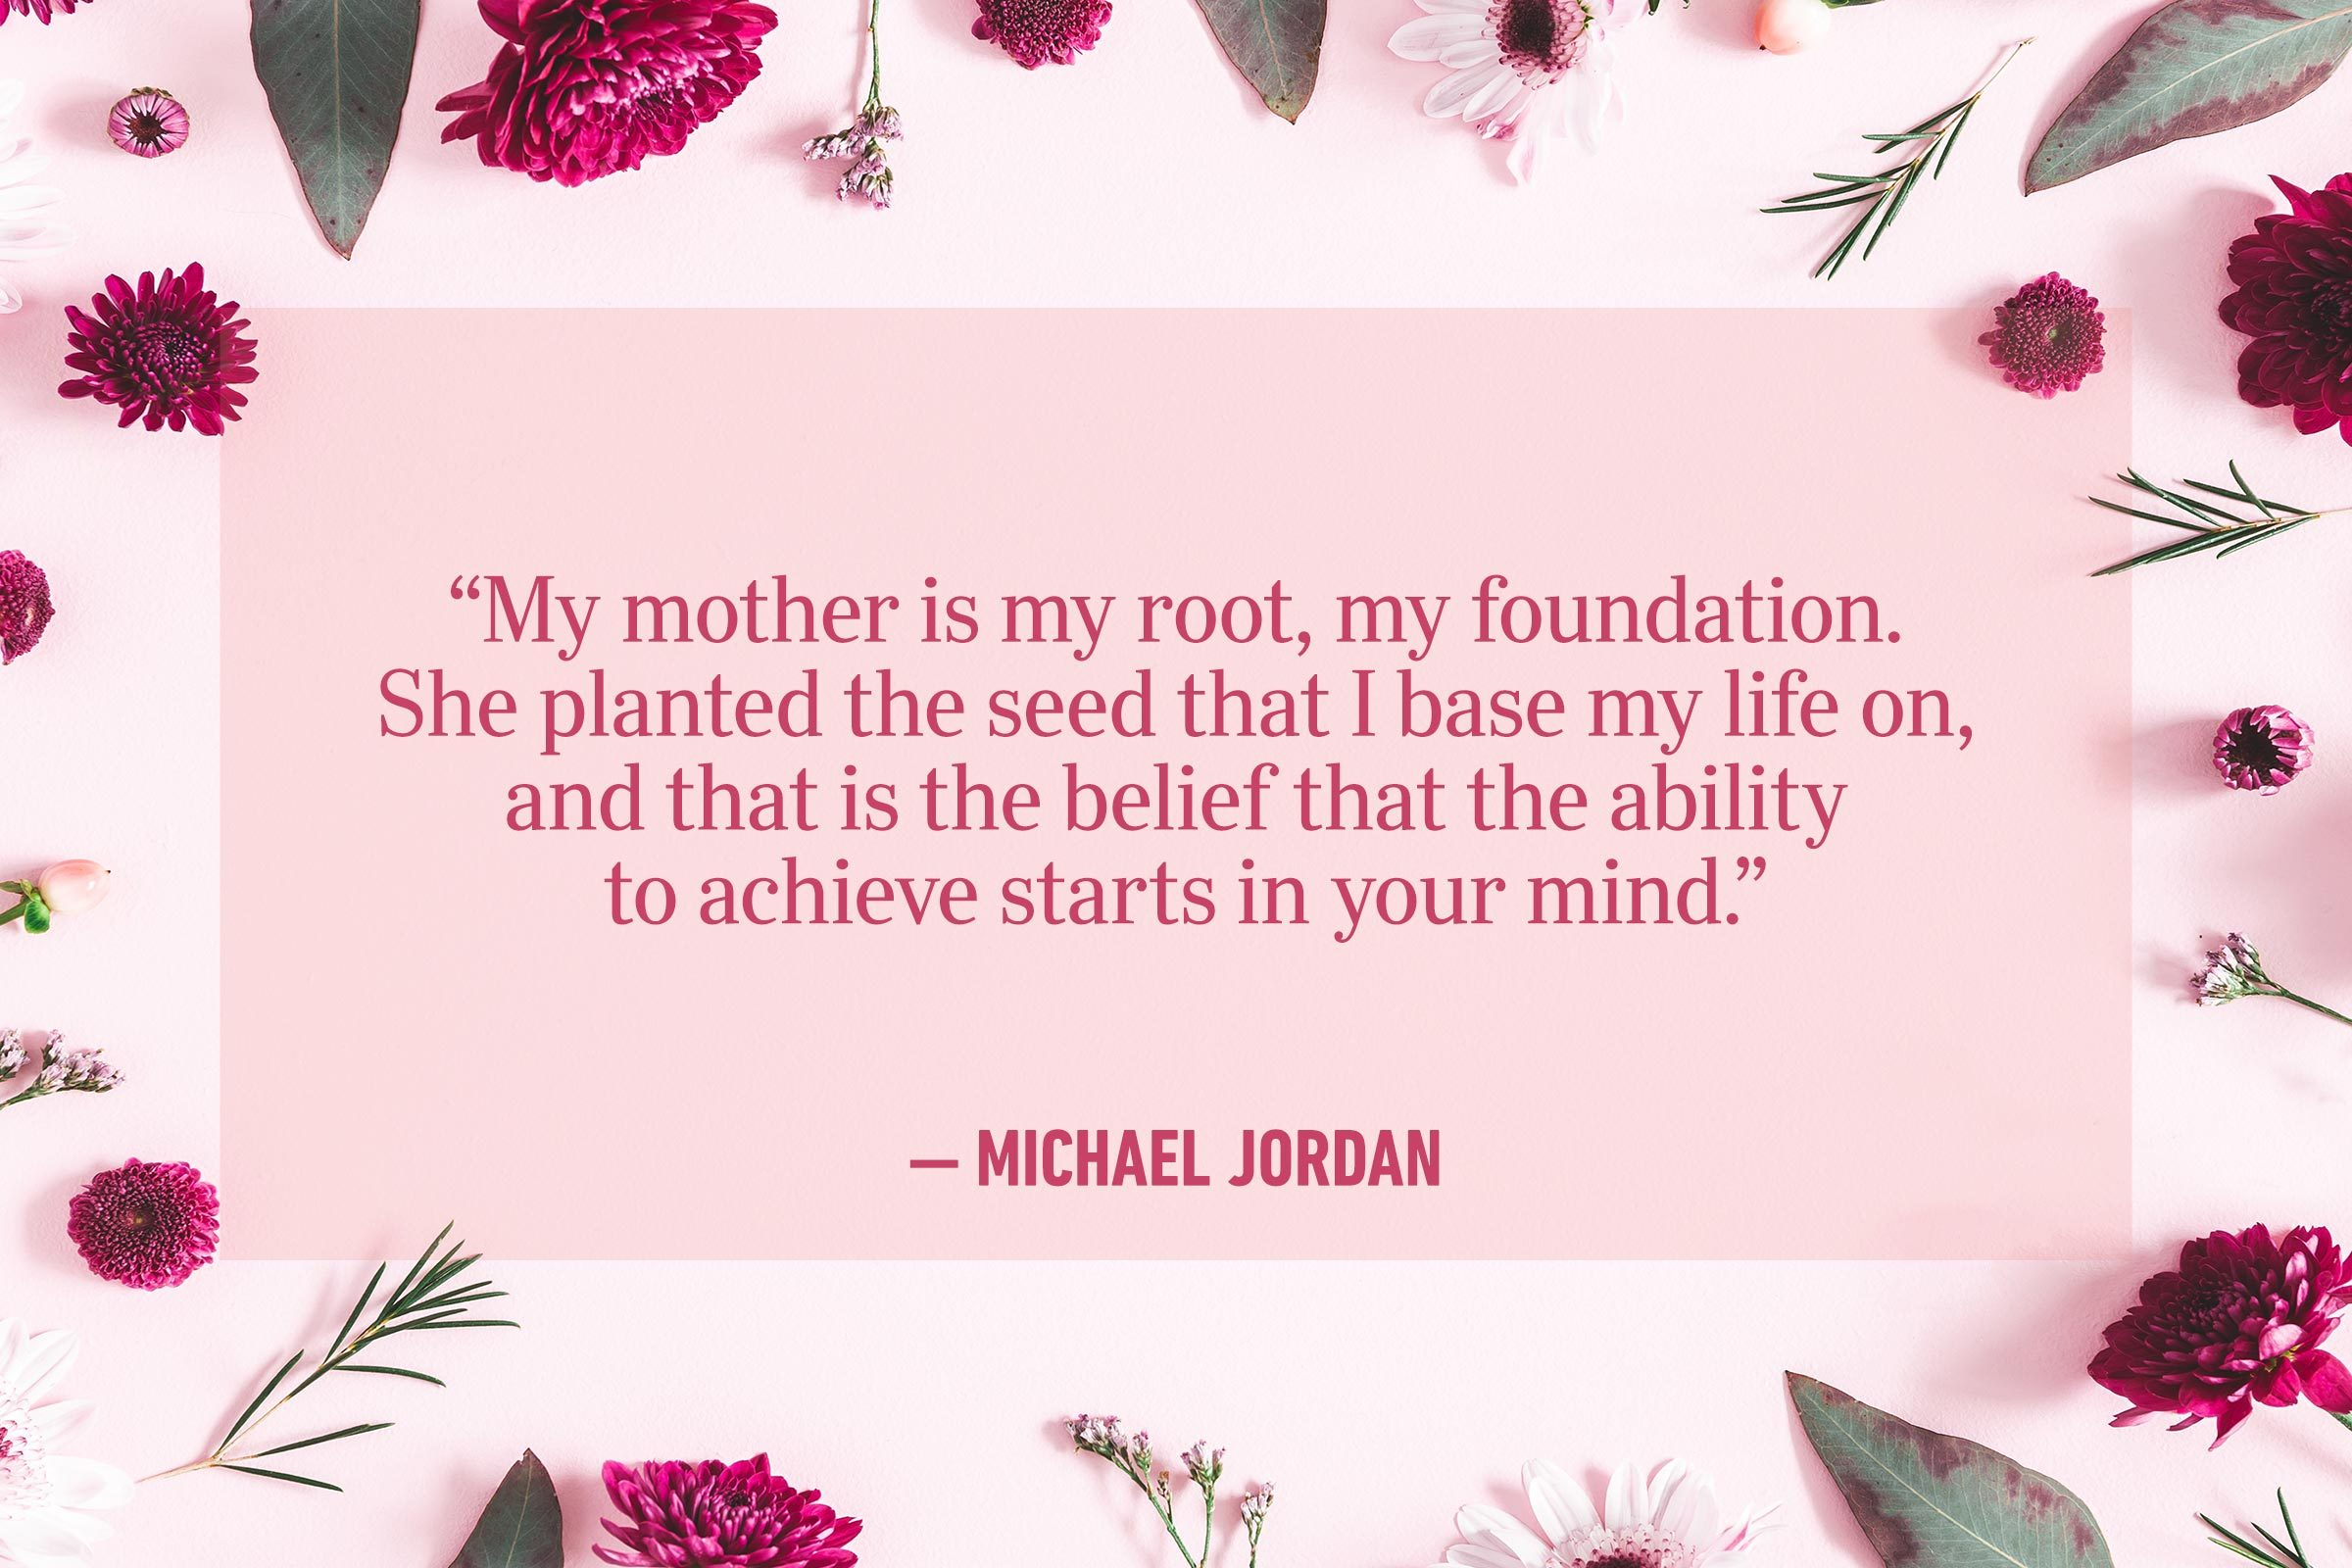 """My mother is my root, my foundation. She planted the seed that I base my life on, and that is the belief that the ability to achieve starts in your mind."" —Michael Jordan"